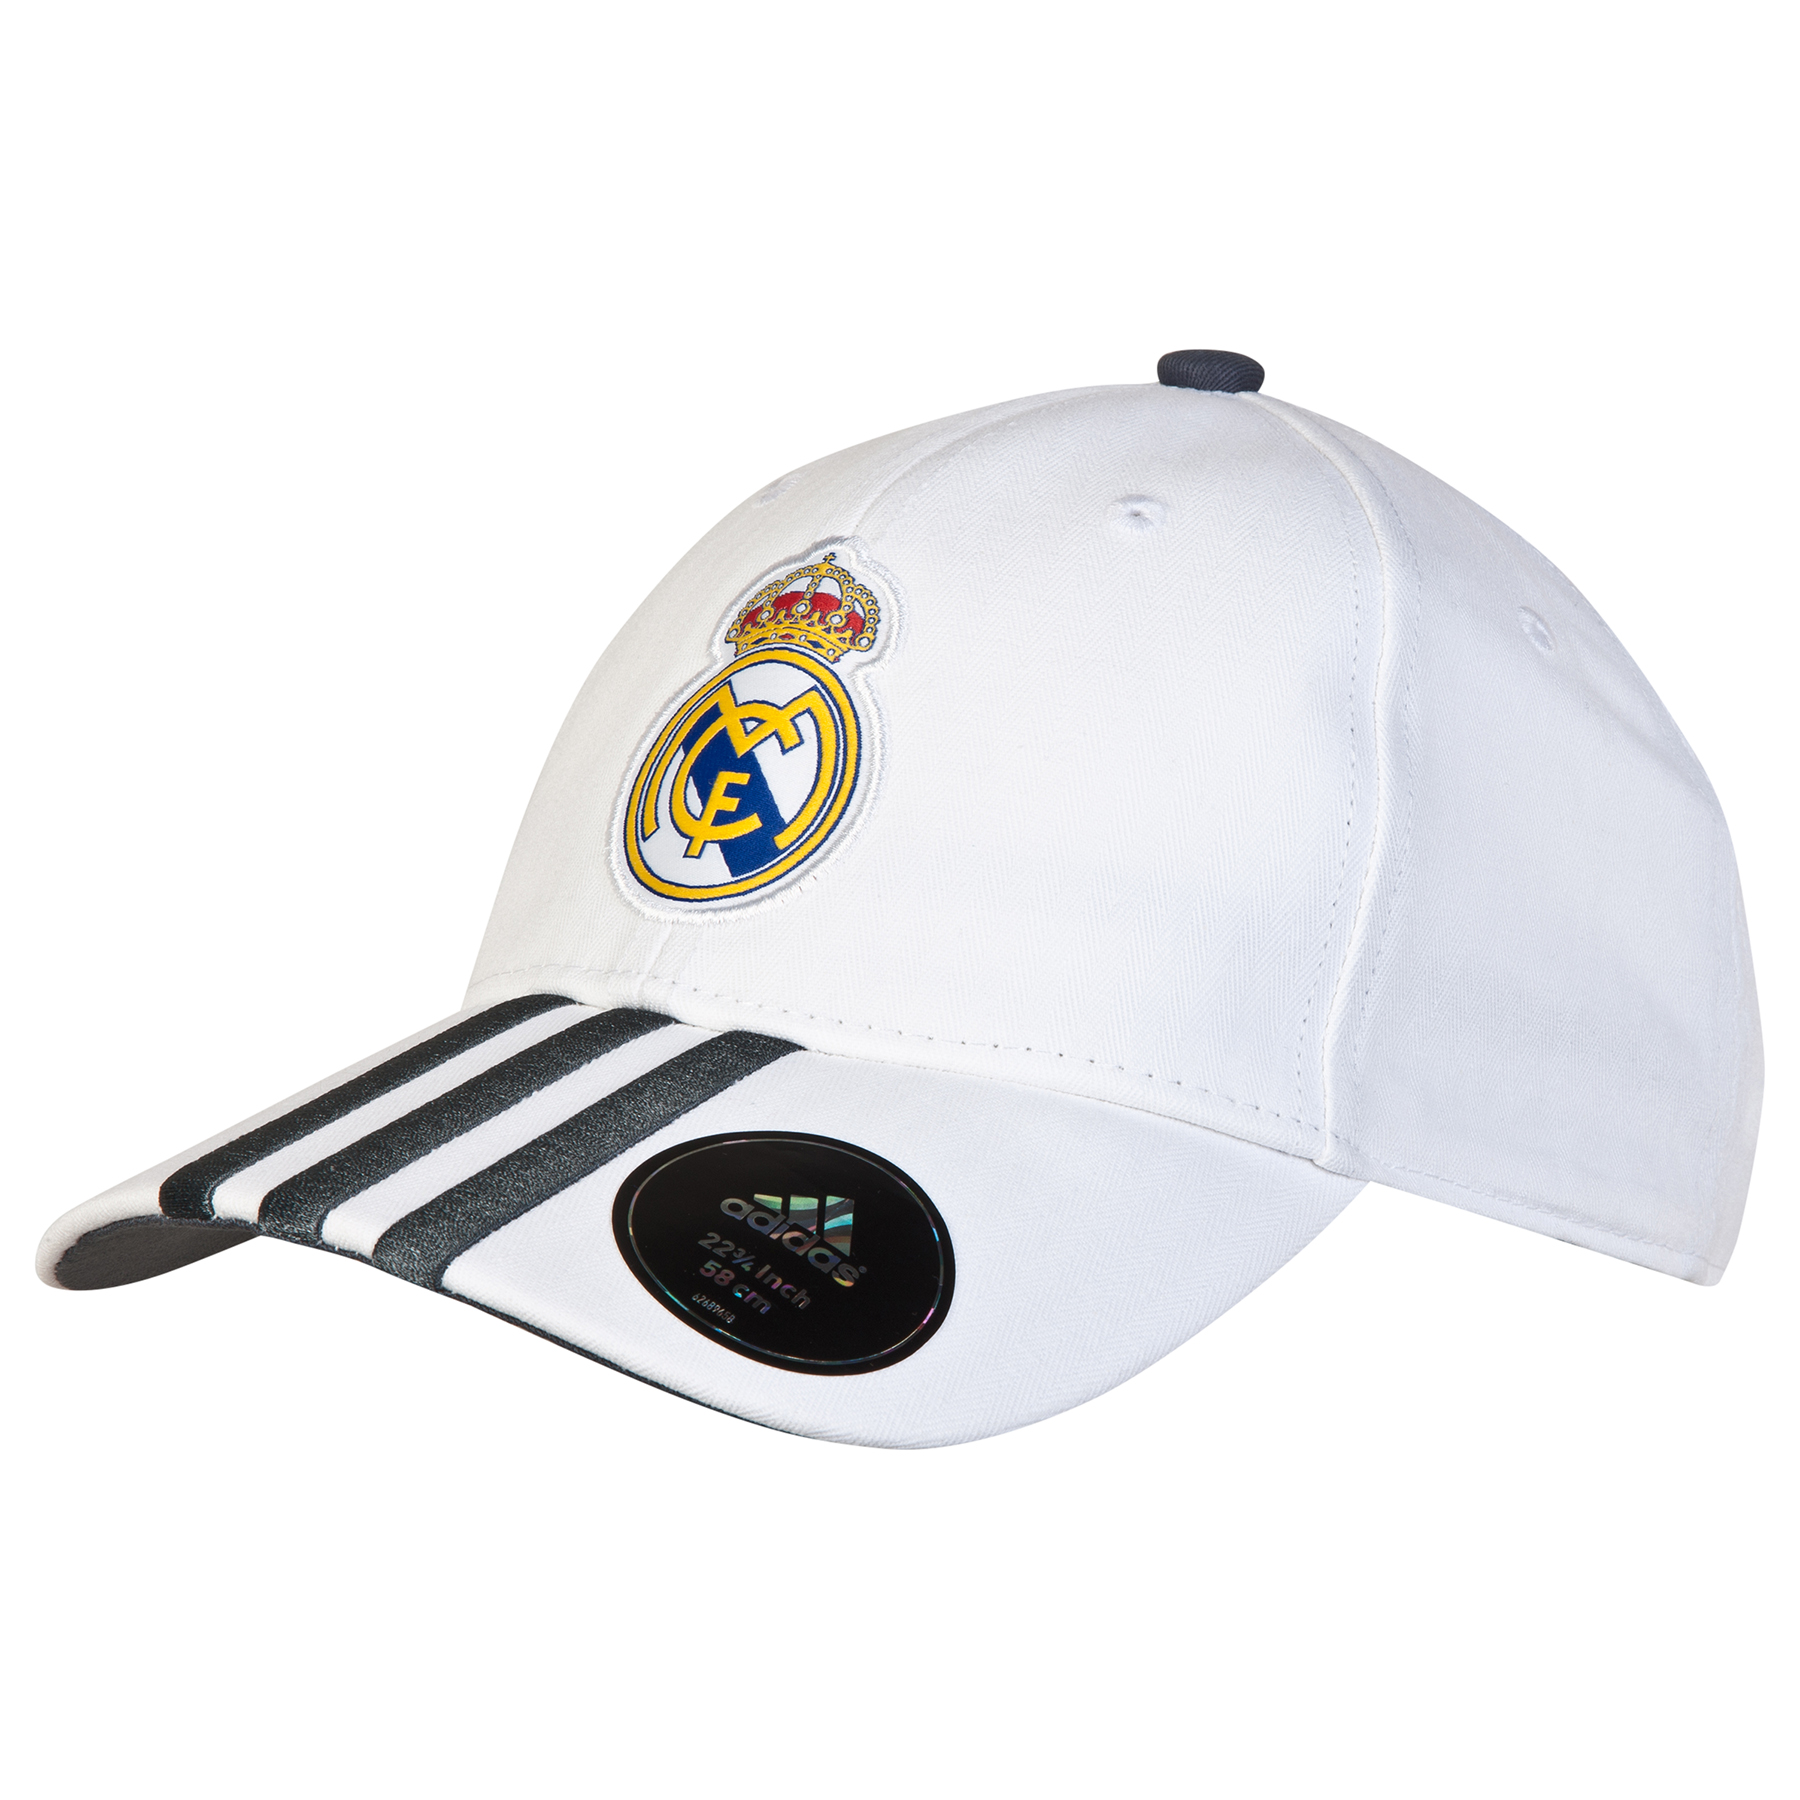 Gorra con 3 rayas del Real Madrid - Blanco